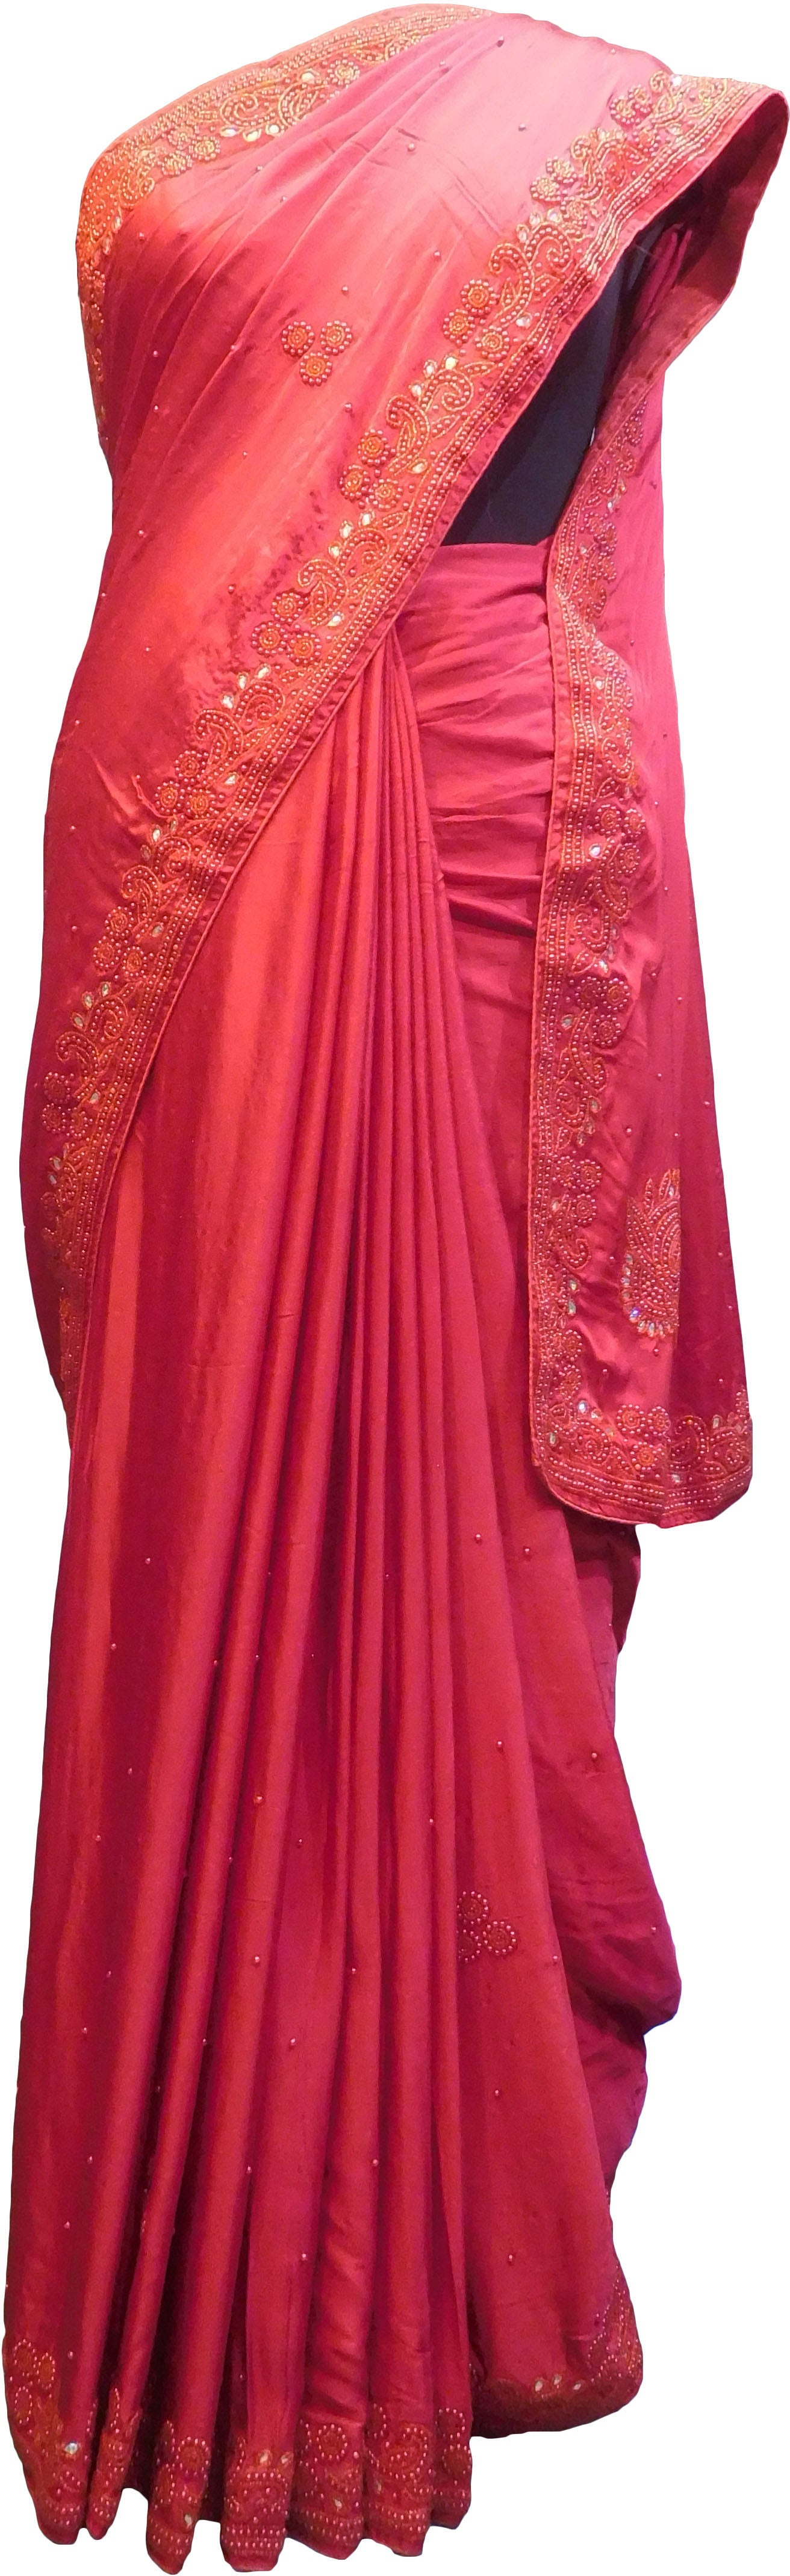 SMSAREE Red Designer Wedding Partywear Satin Silk Stone Beads & Pearl Hand Embroidery Work Bridal Saree Sari With Blouse Piece F087